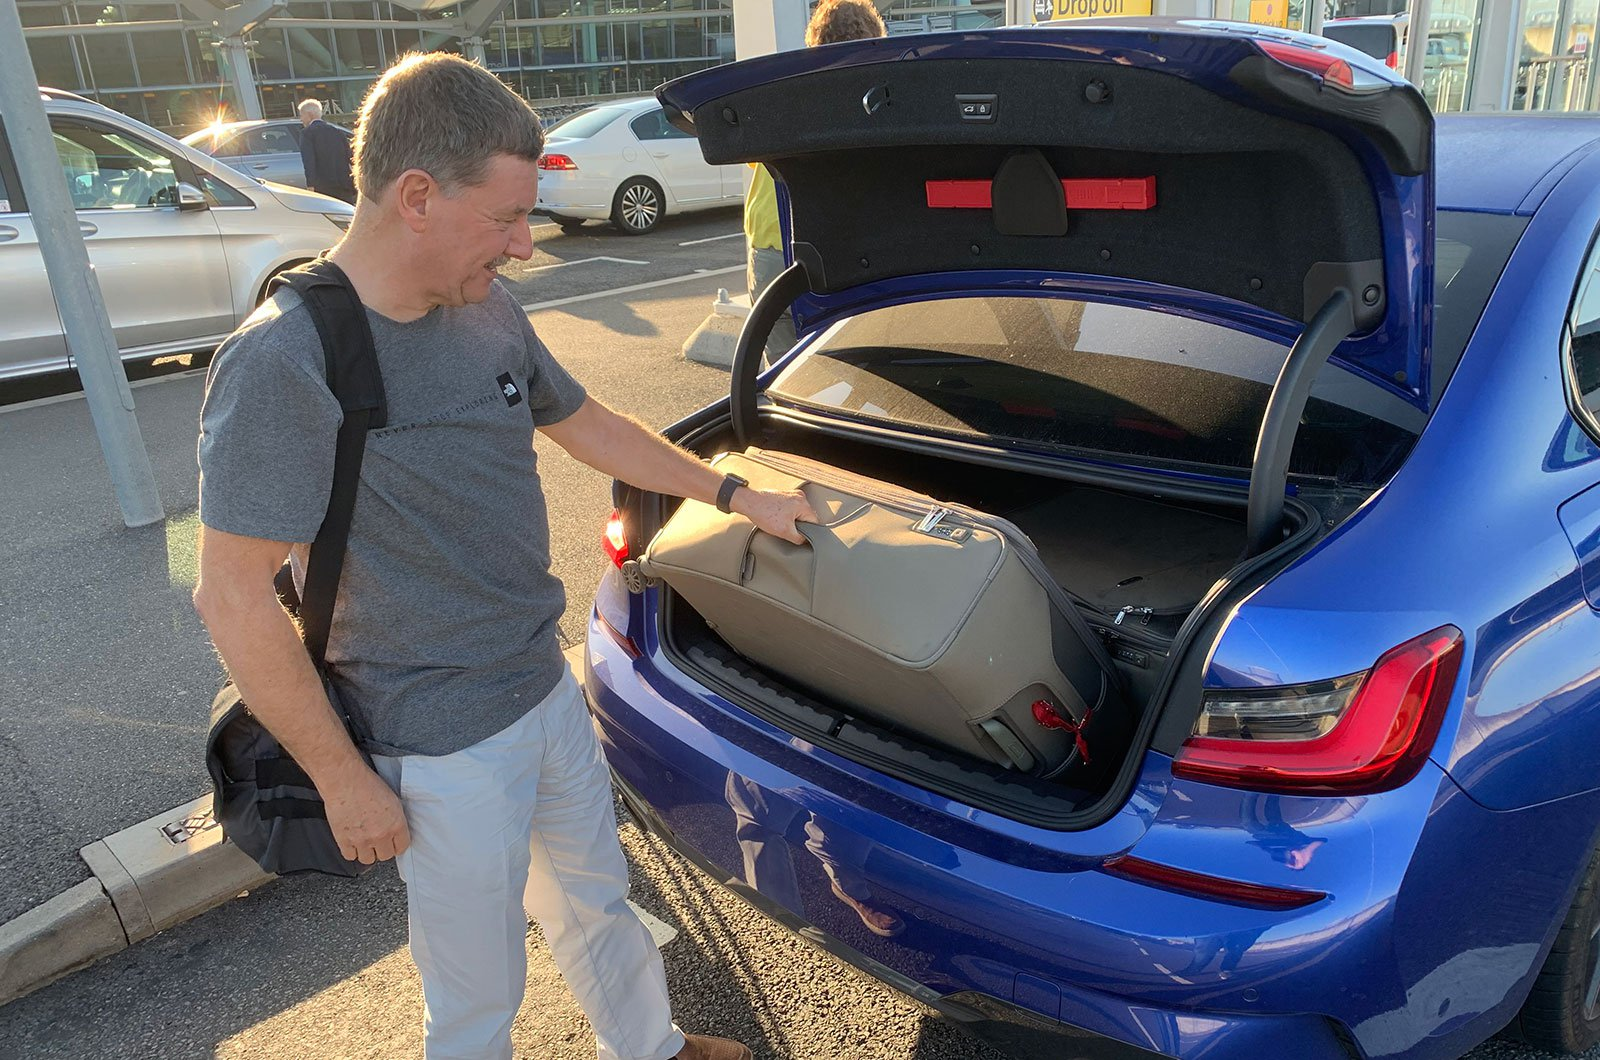 BMW 3 Series boot with suitcases